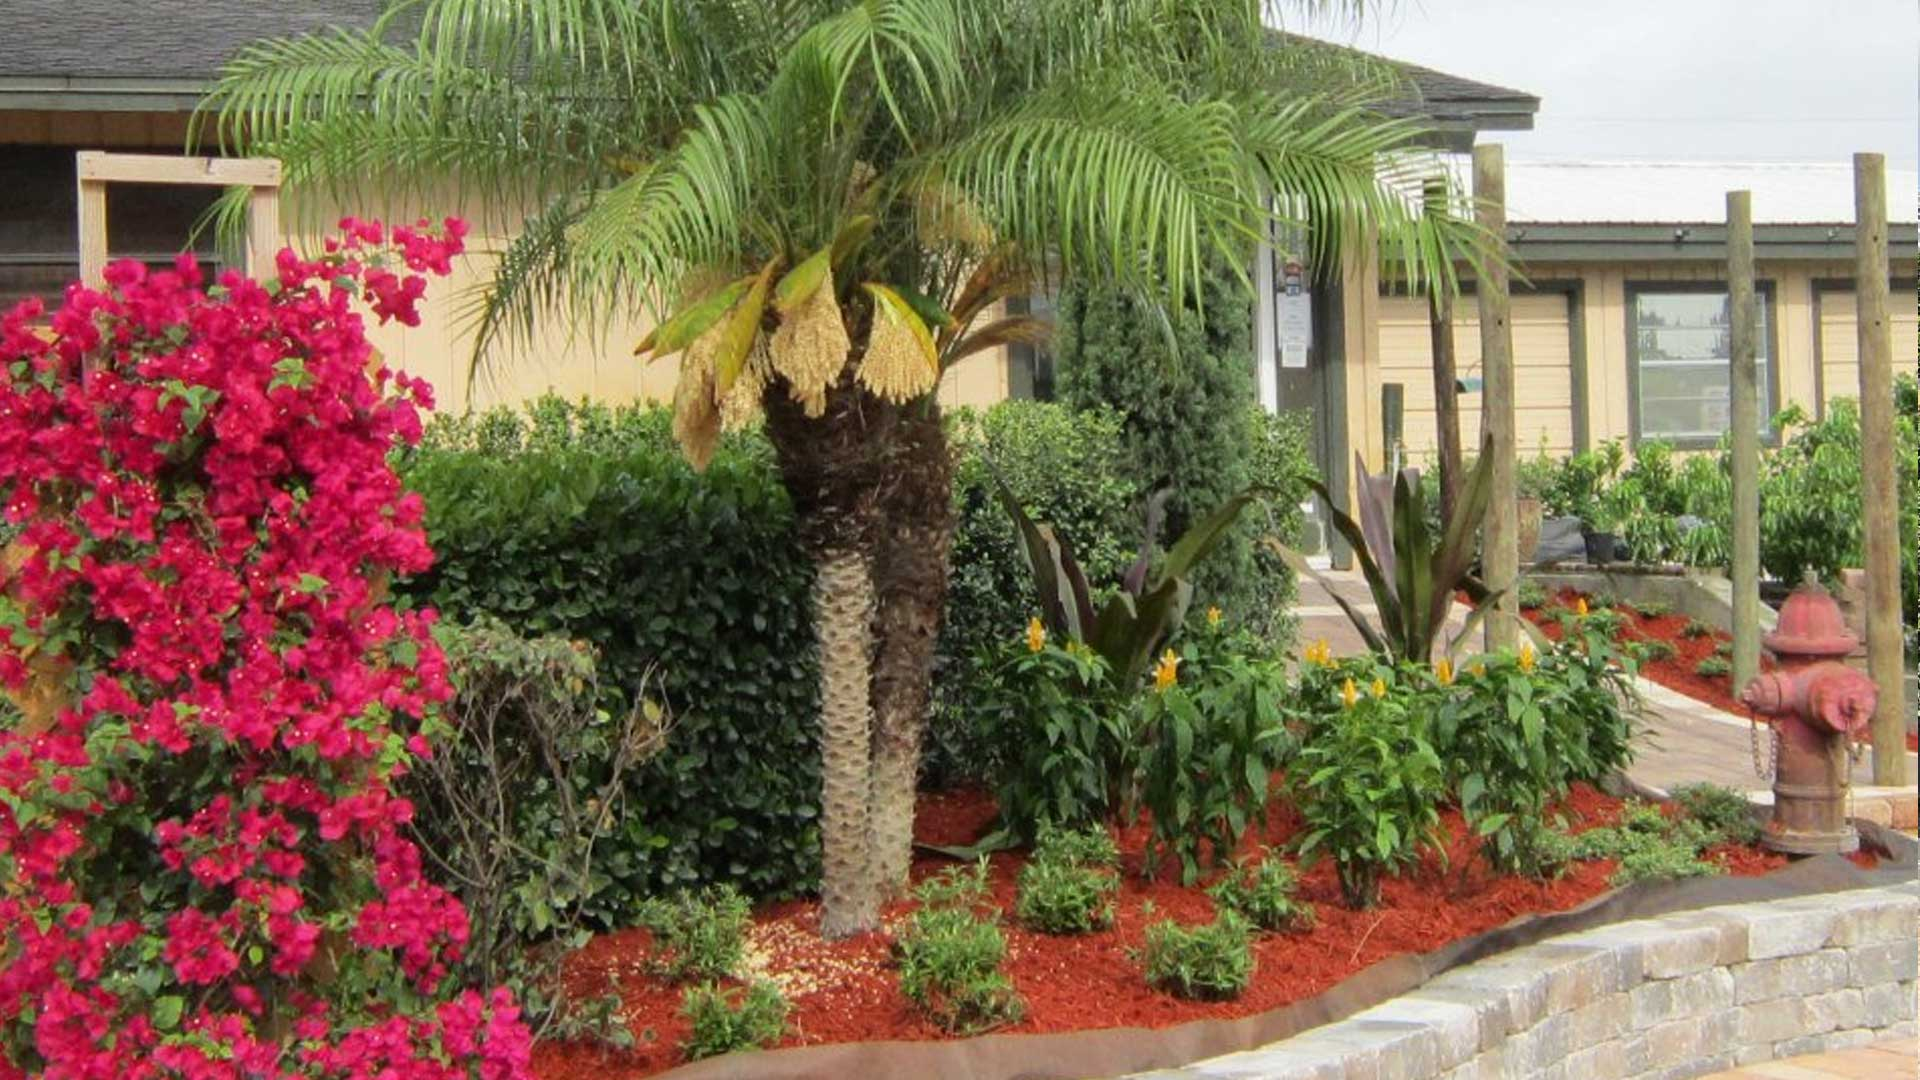 The landscaping at the front entrance to our nursery featuring a Bougainvillea, Pygmy Date Palm planted inside of a raised planter bed.